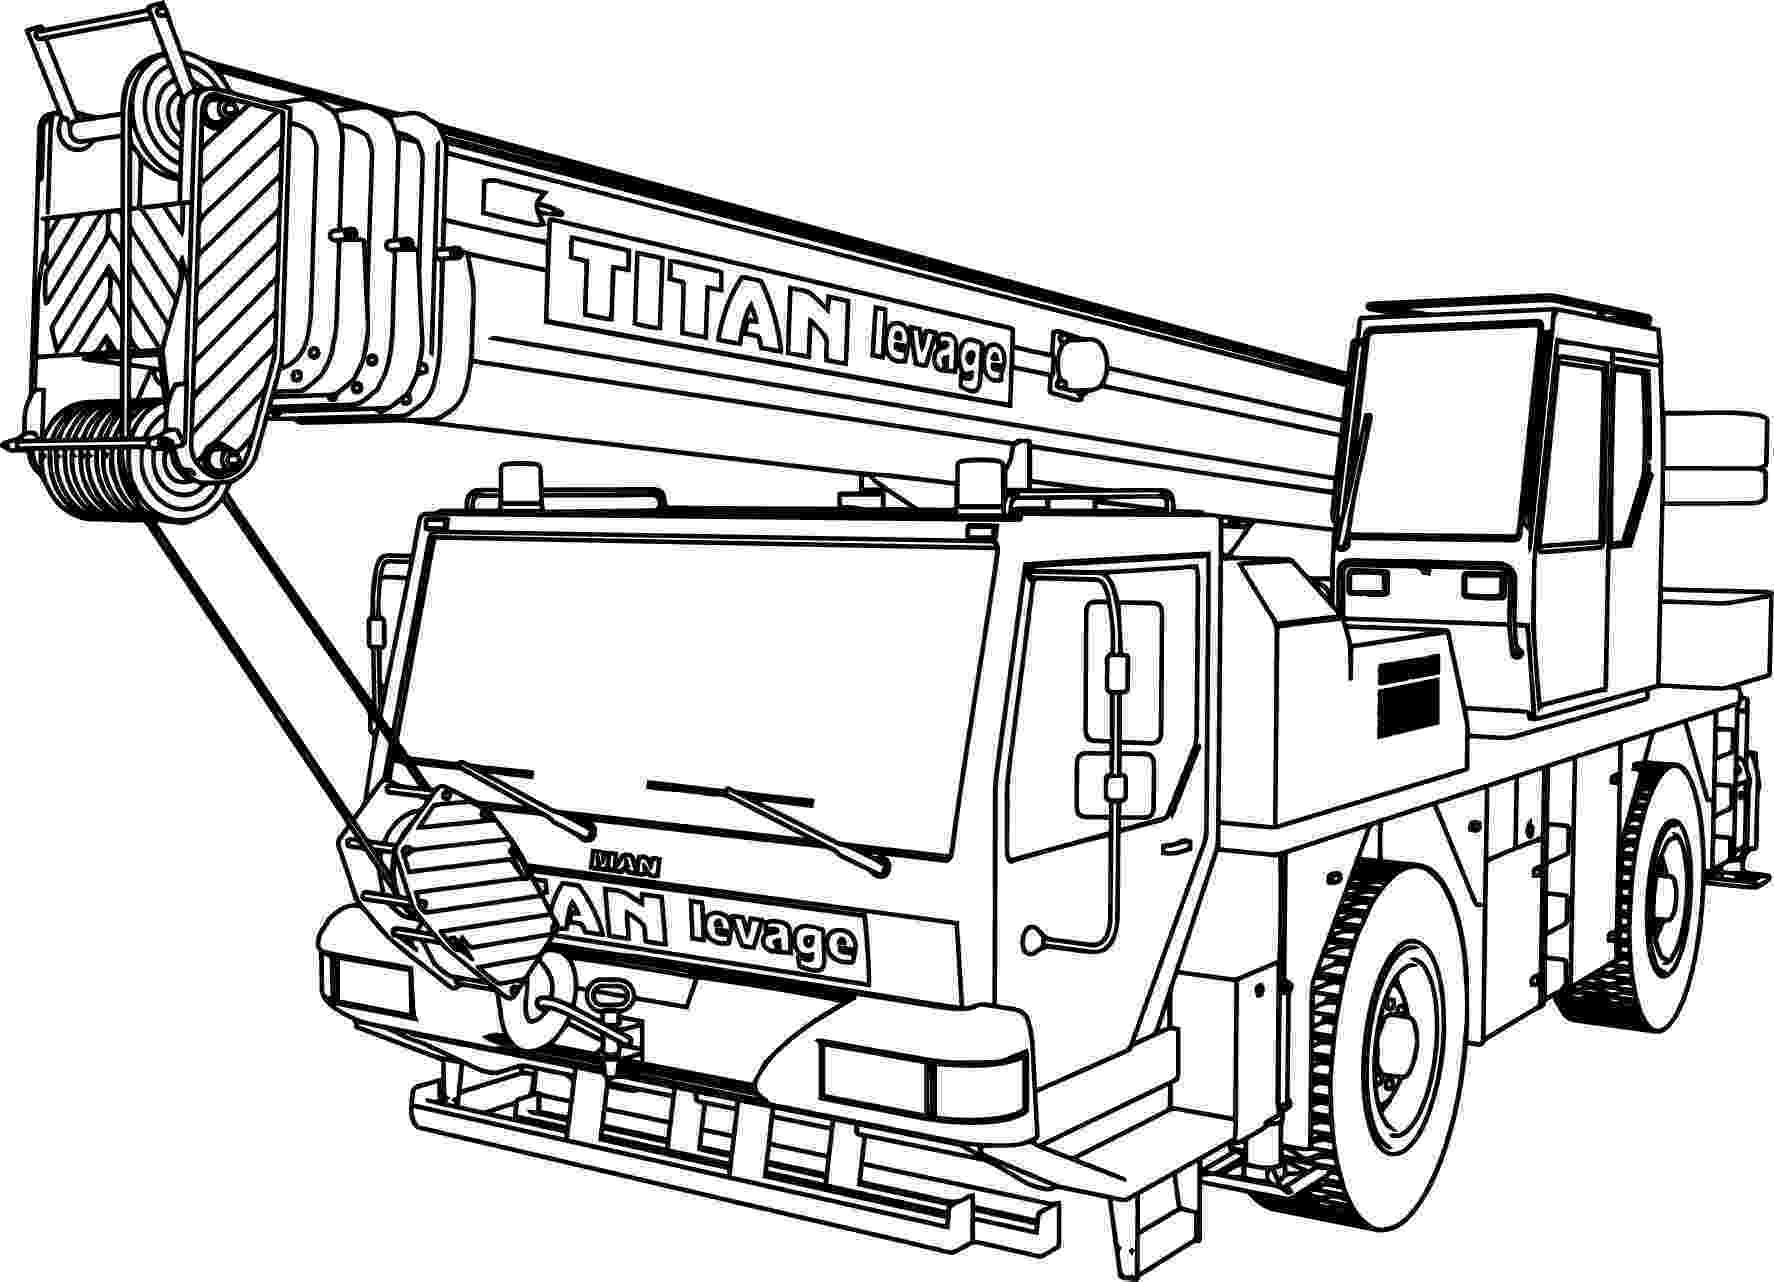 construction trucks coloring pages dump truck coloring pages to download and print for free construction coloring pages trucks